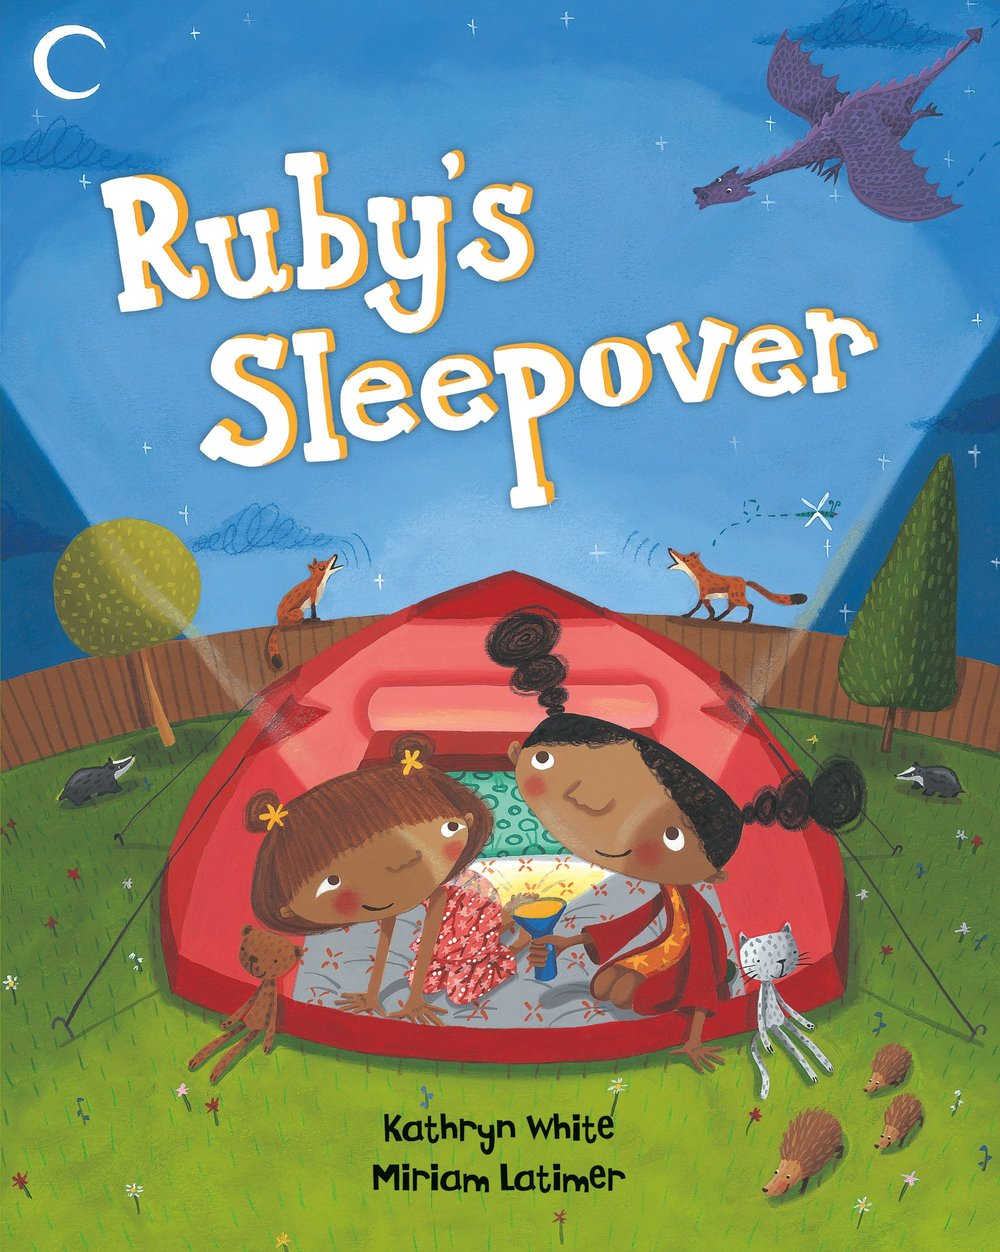 ruby s sleepover picked as one of 7 books about sleepovers kathryn